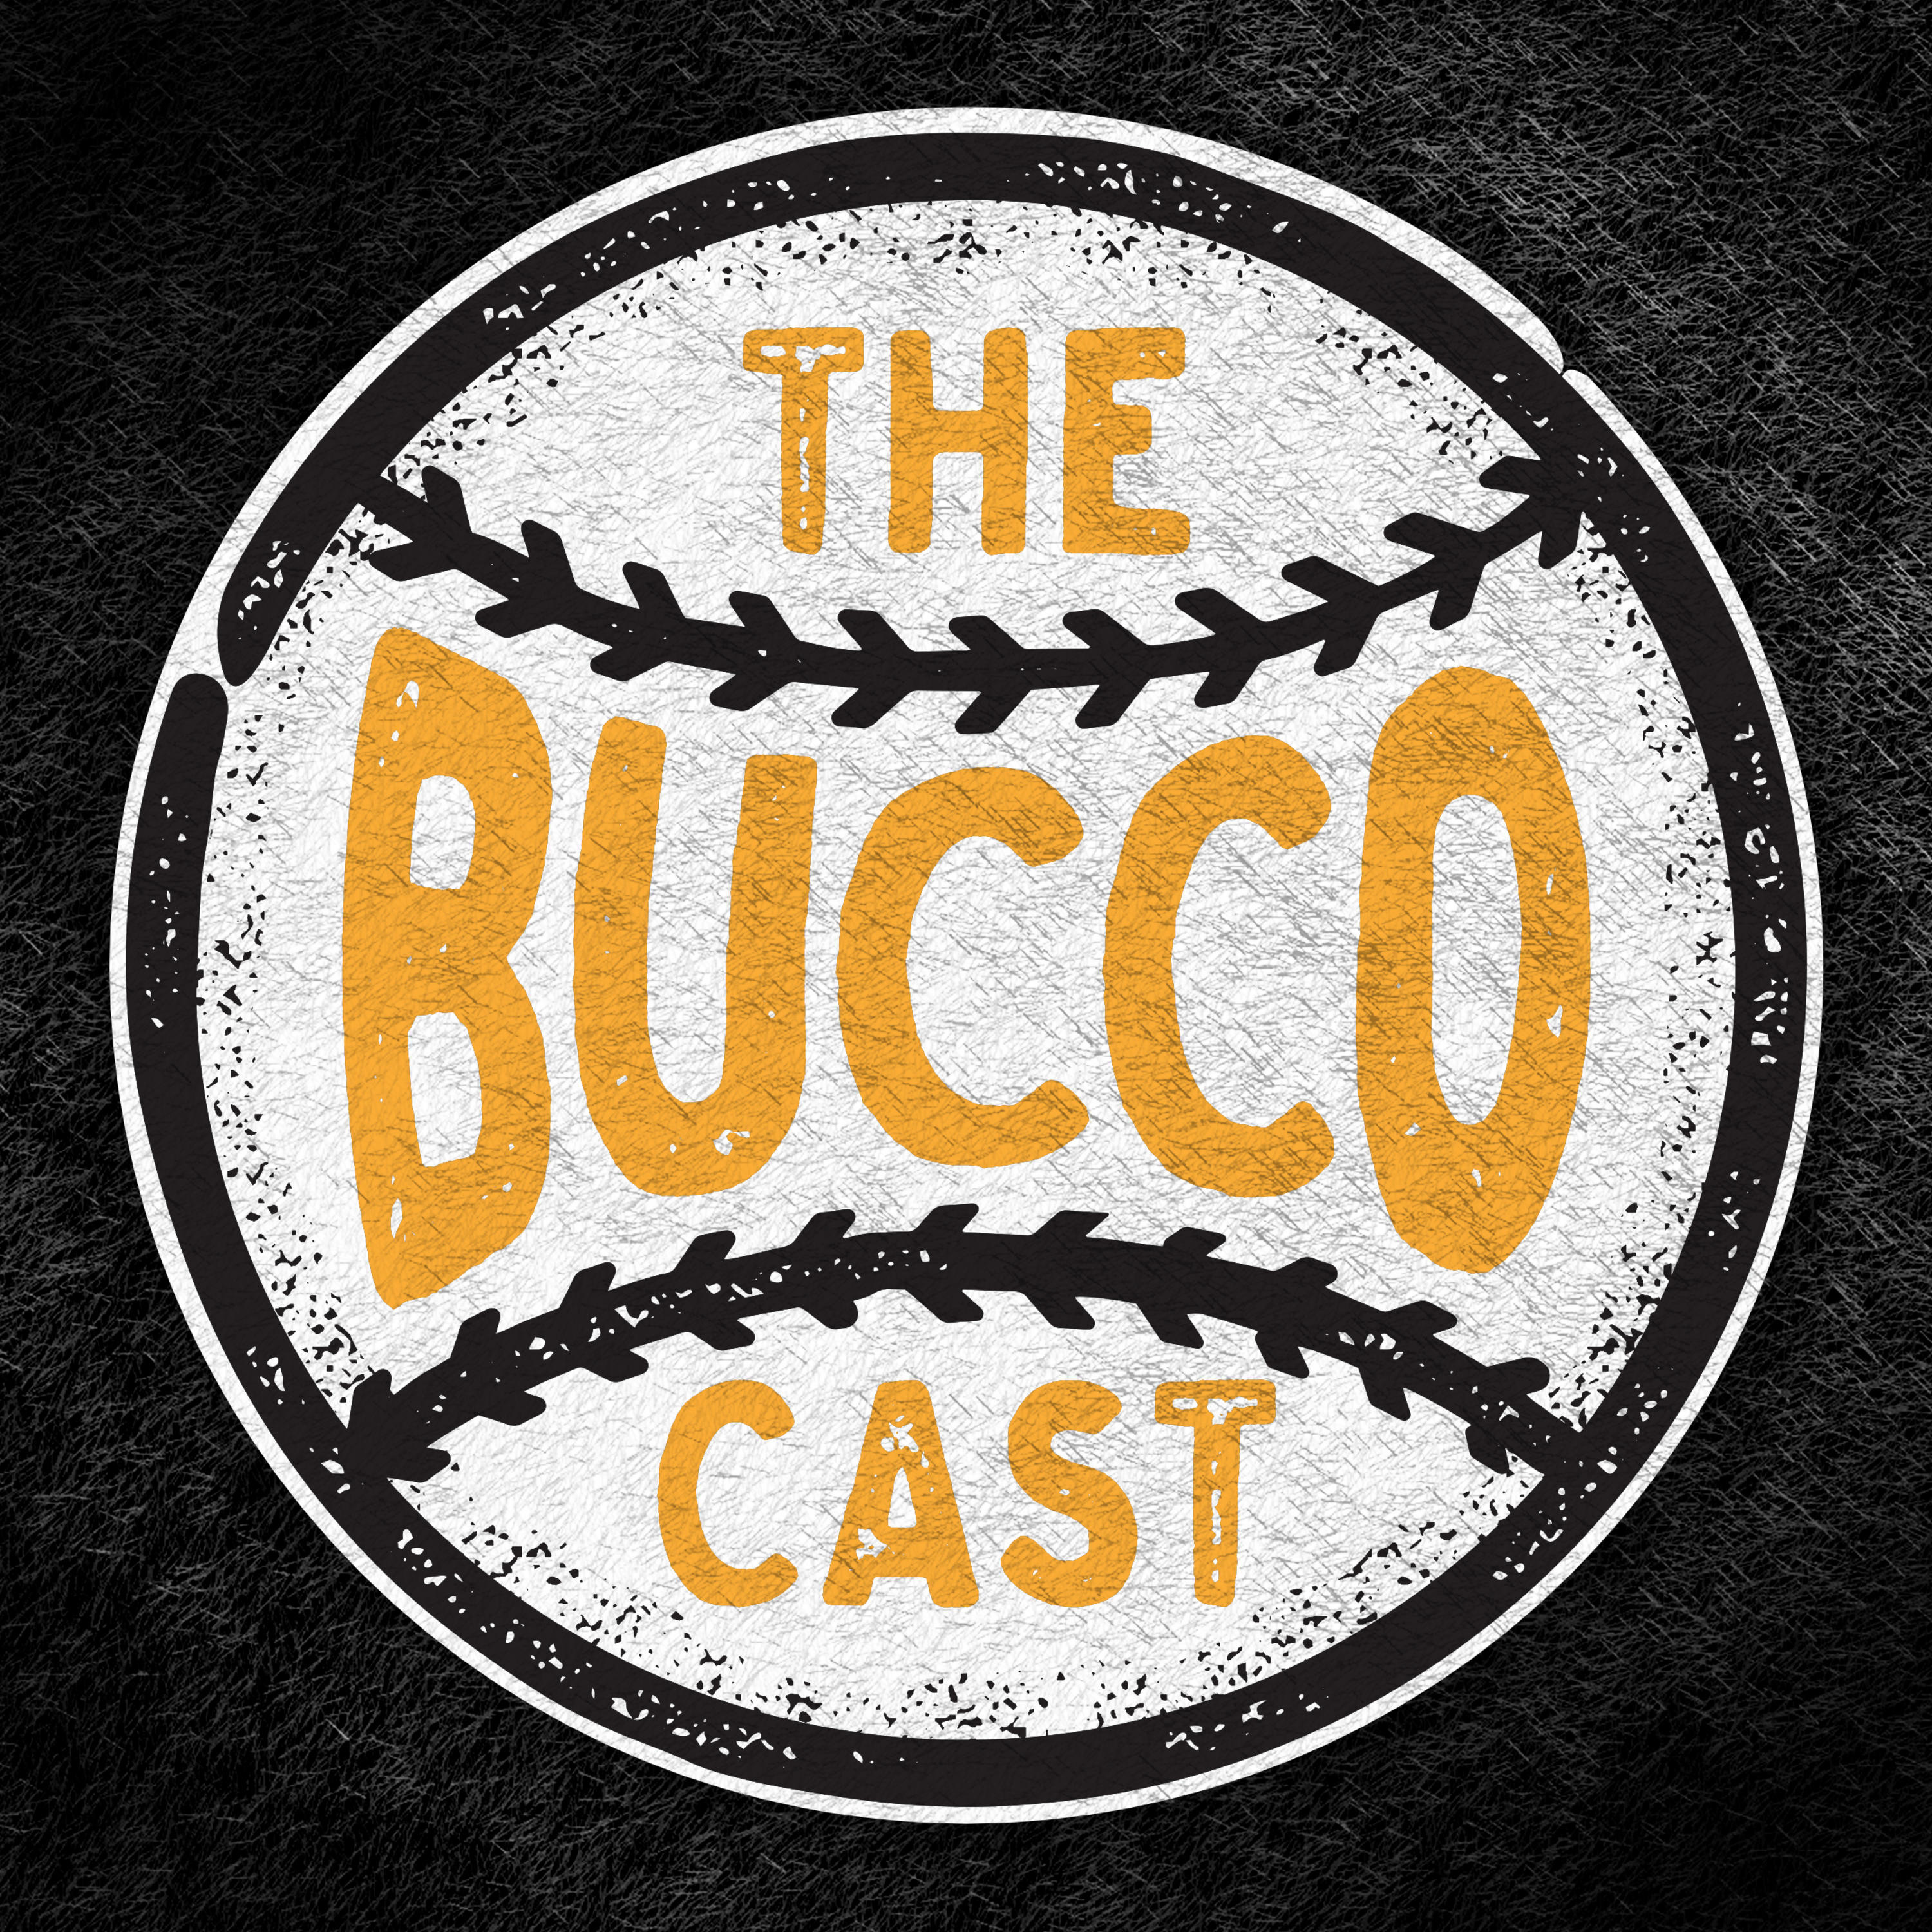 The Buccocast 36: The drudgery continues